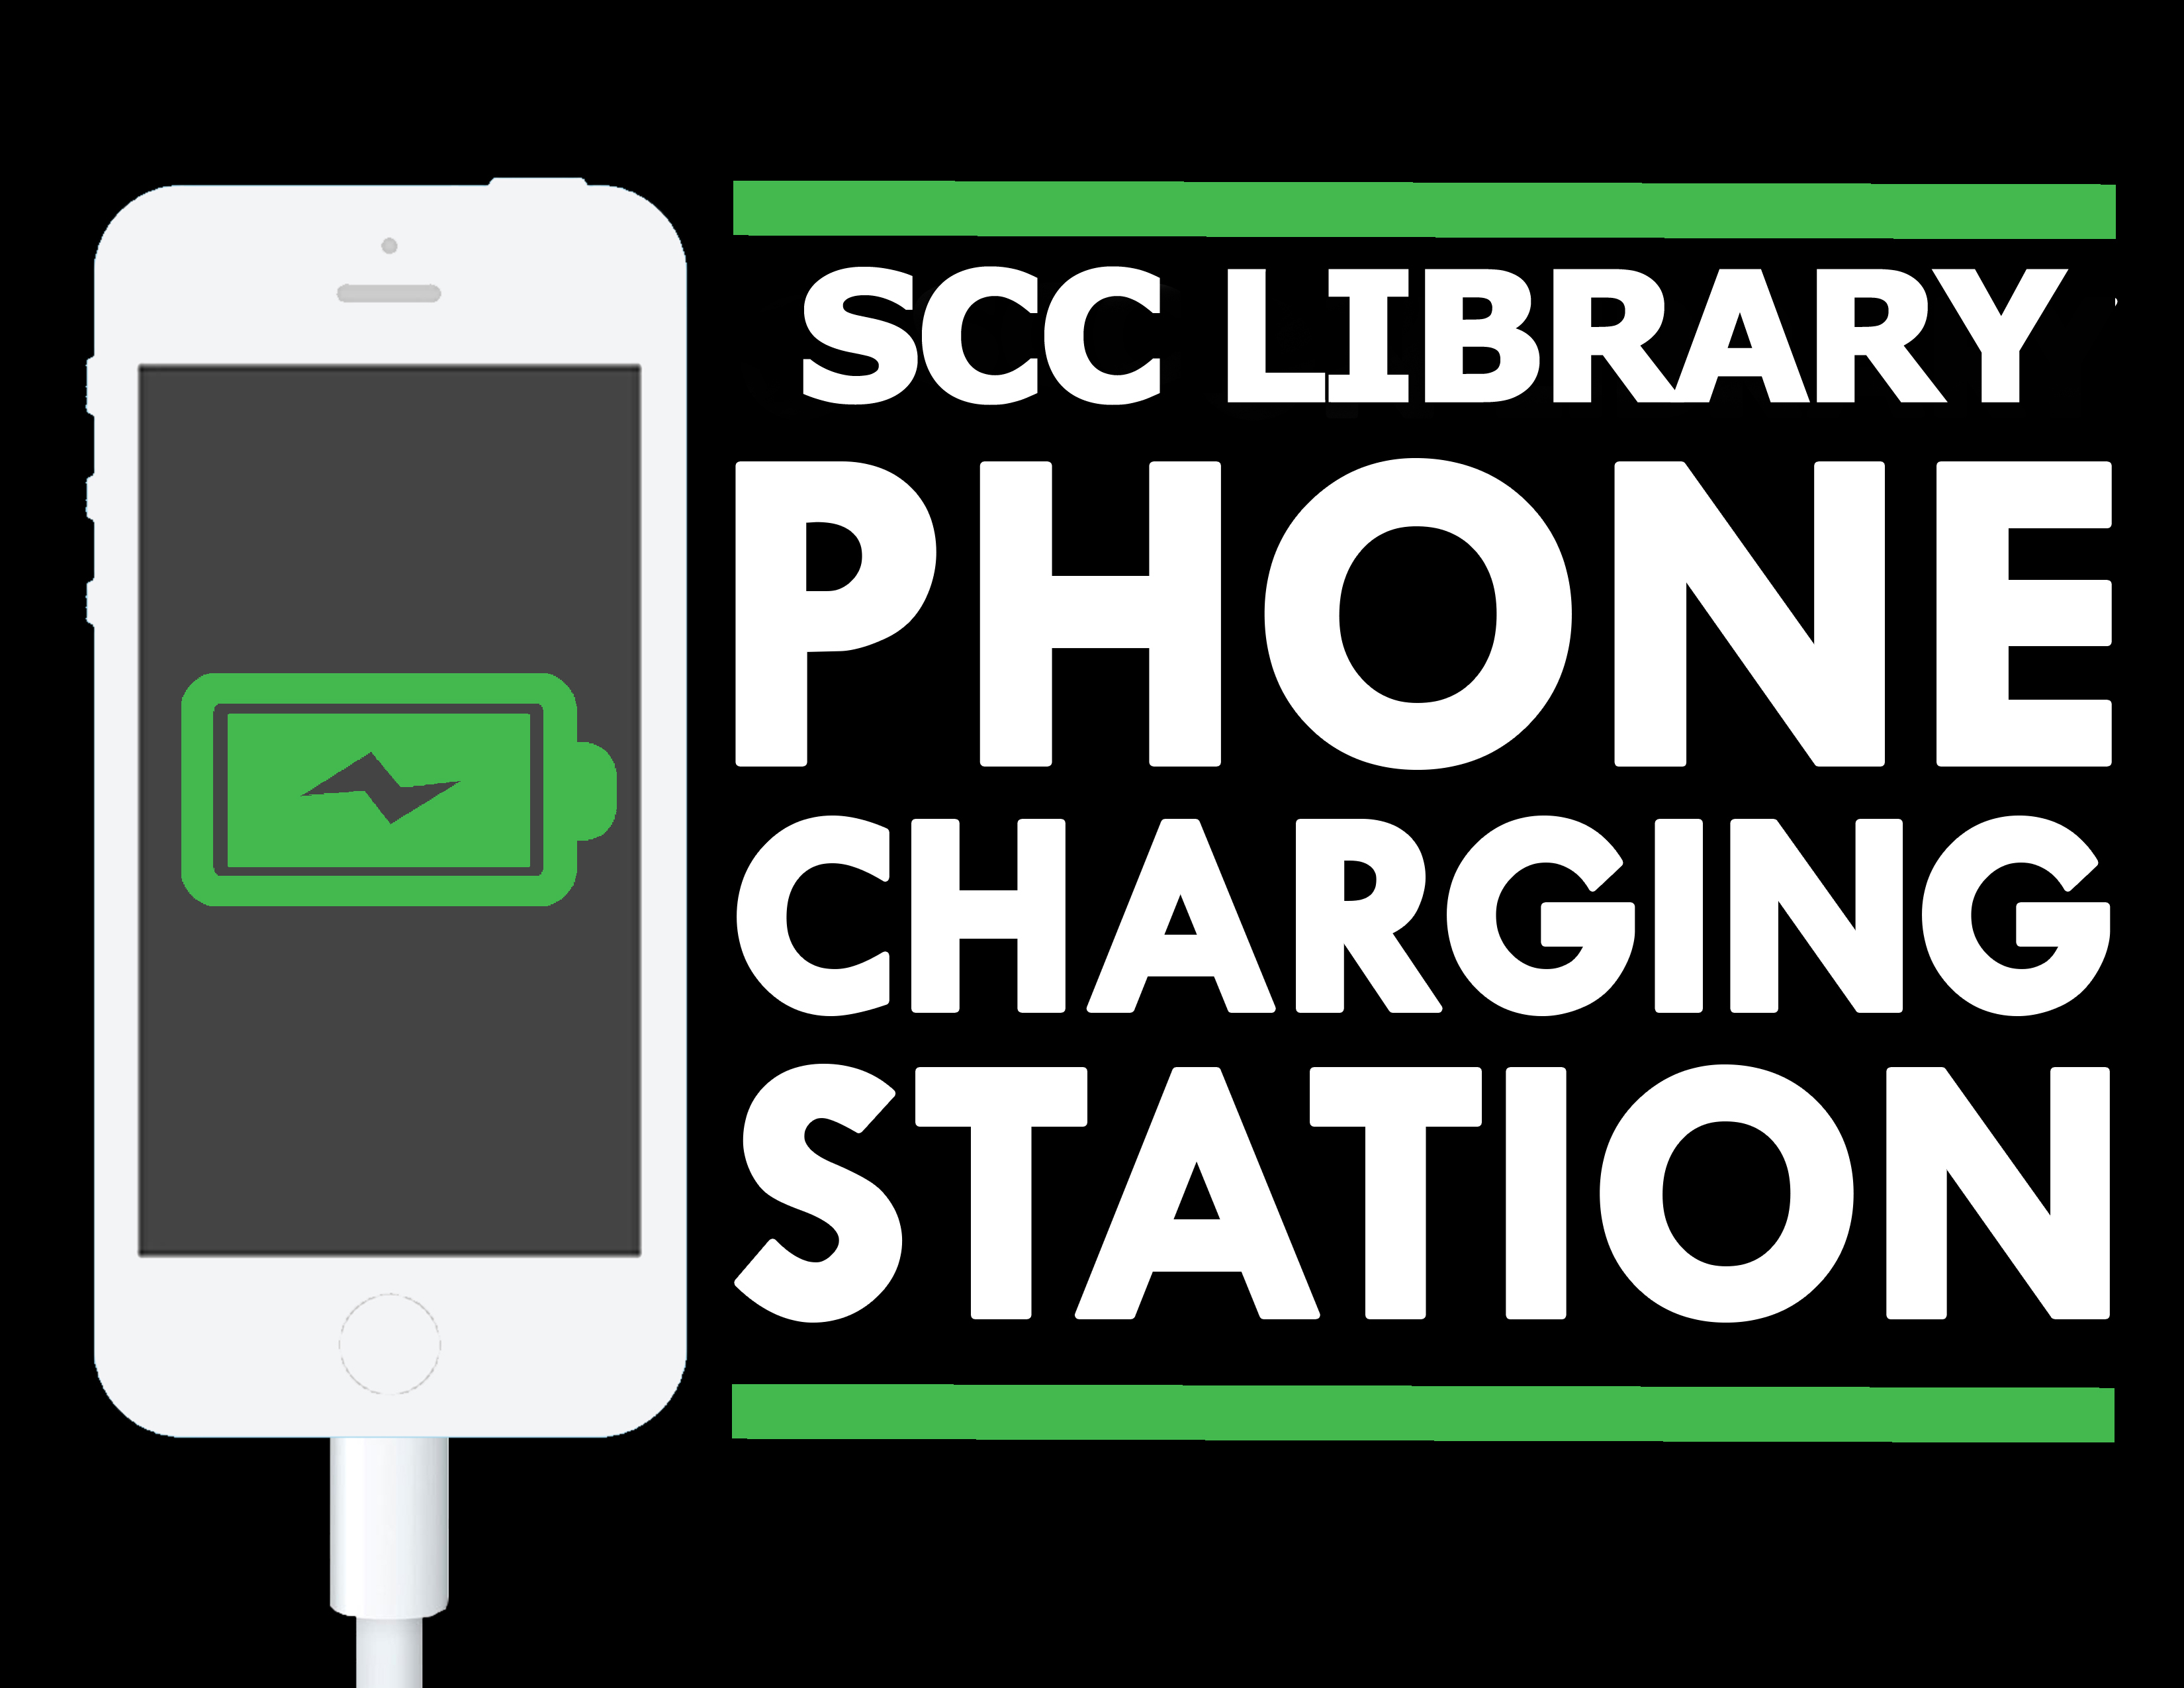 Phone Charging Station Library pic